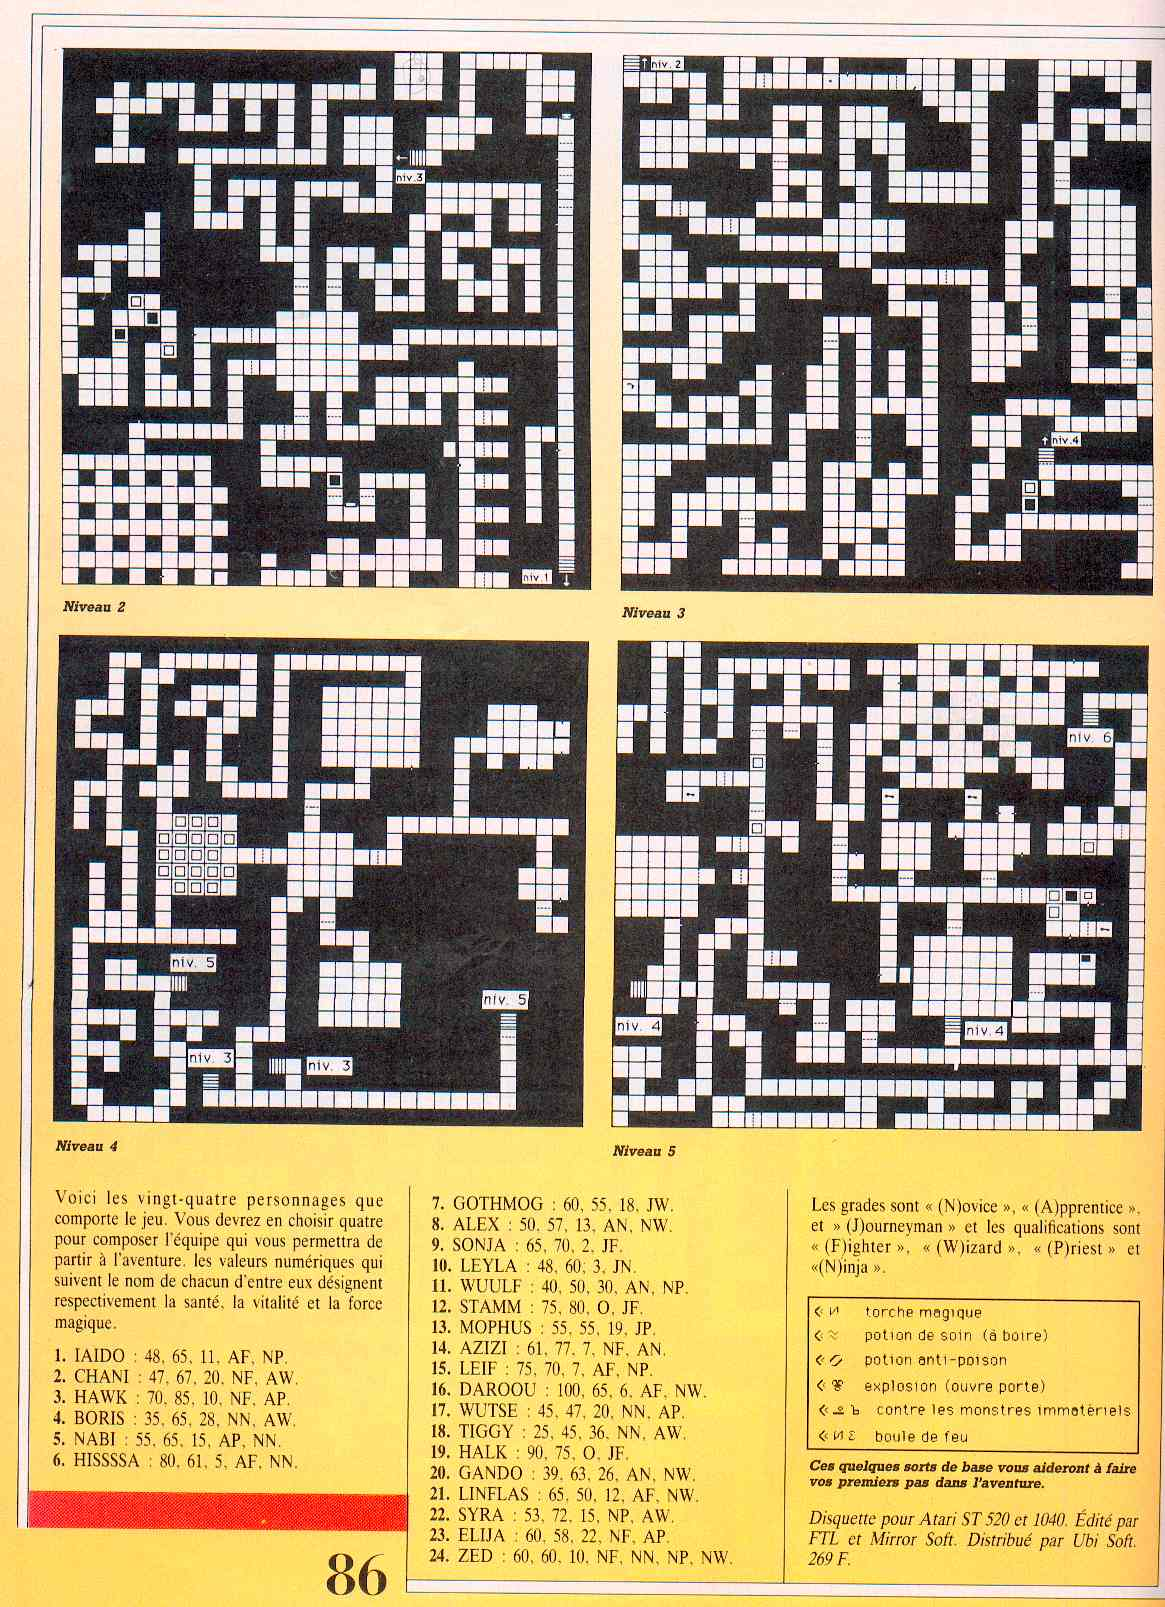 Dungeon Master guide published in French magazine 'Jeux et Stratégies', Issue #51, June 1998, Page 86